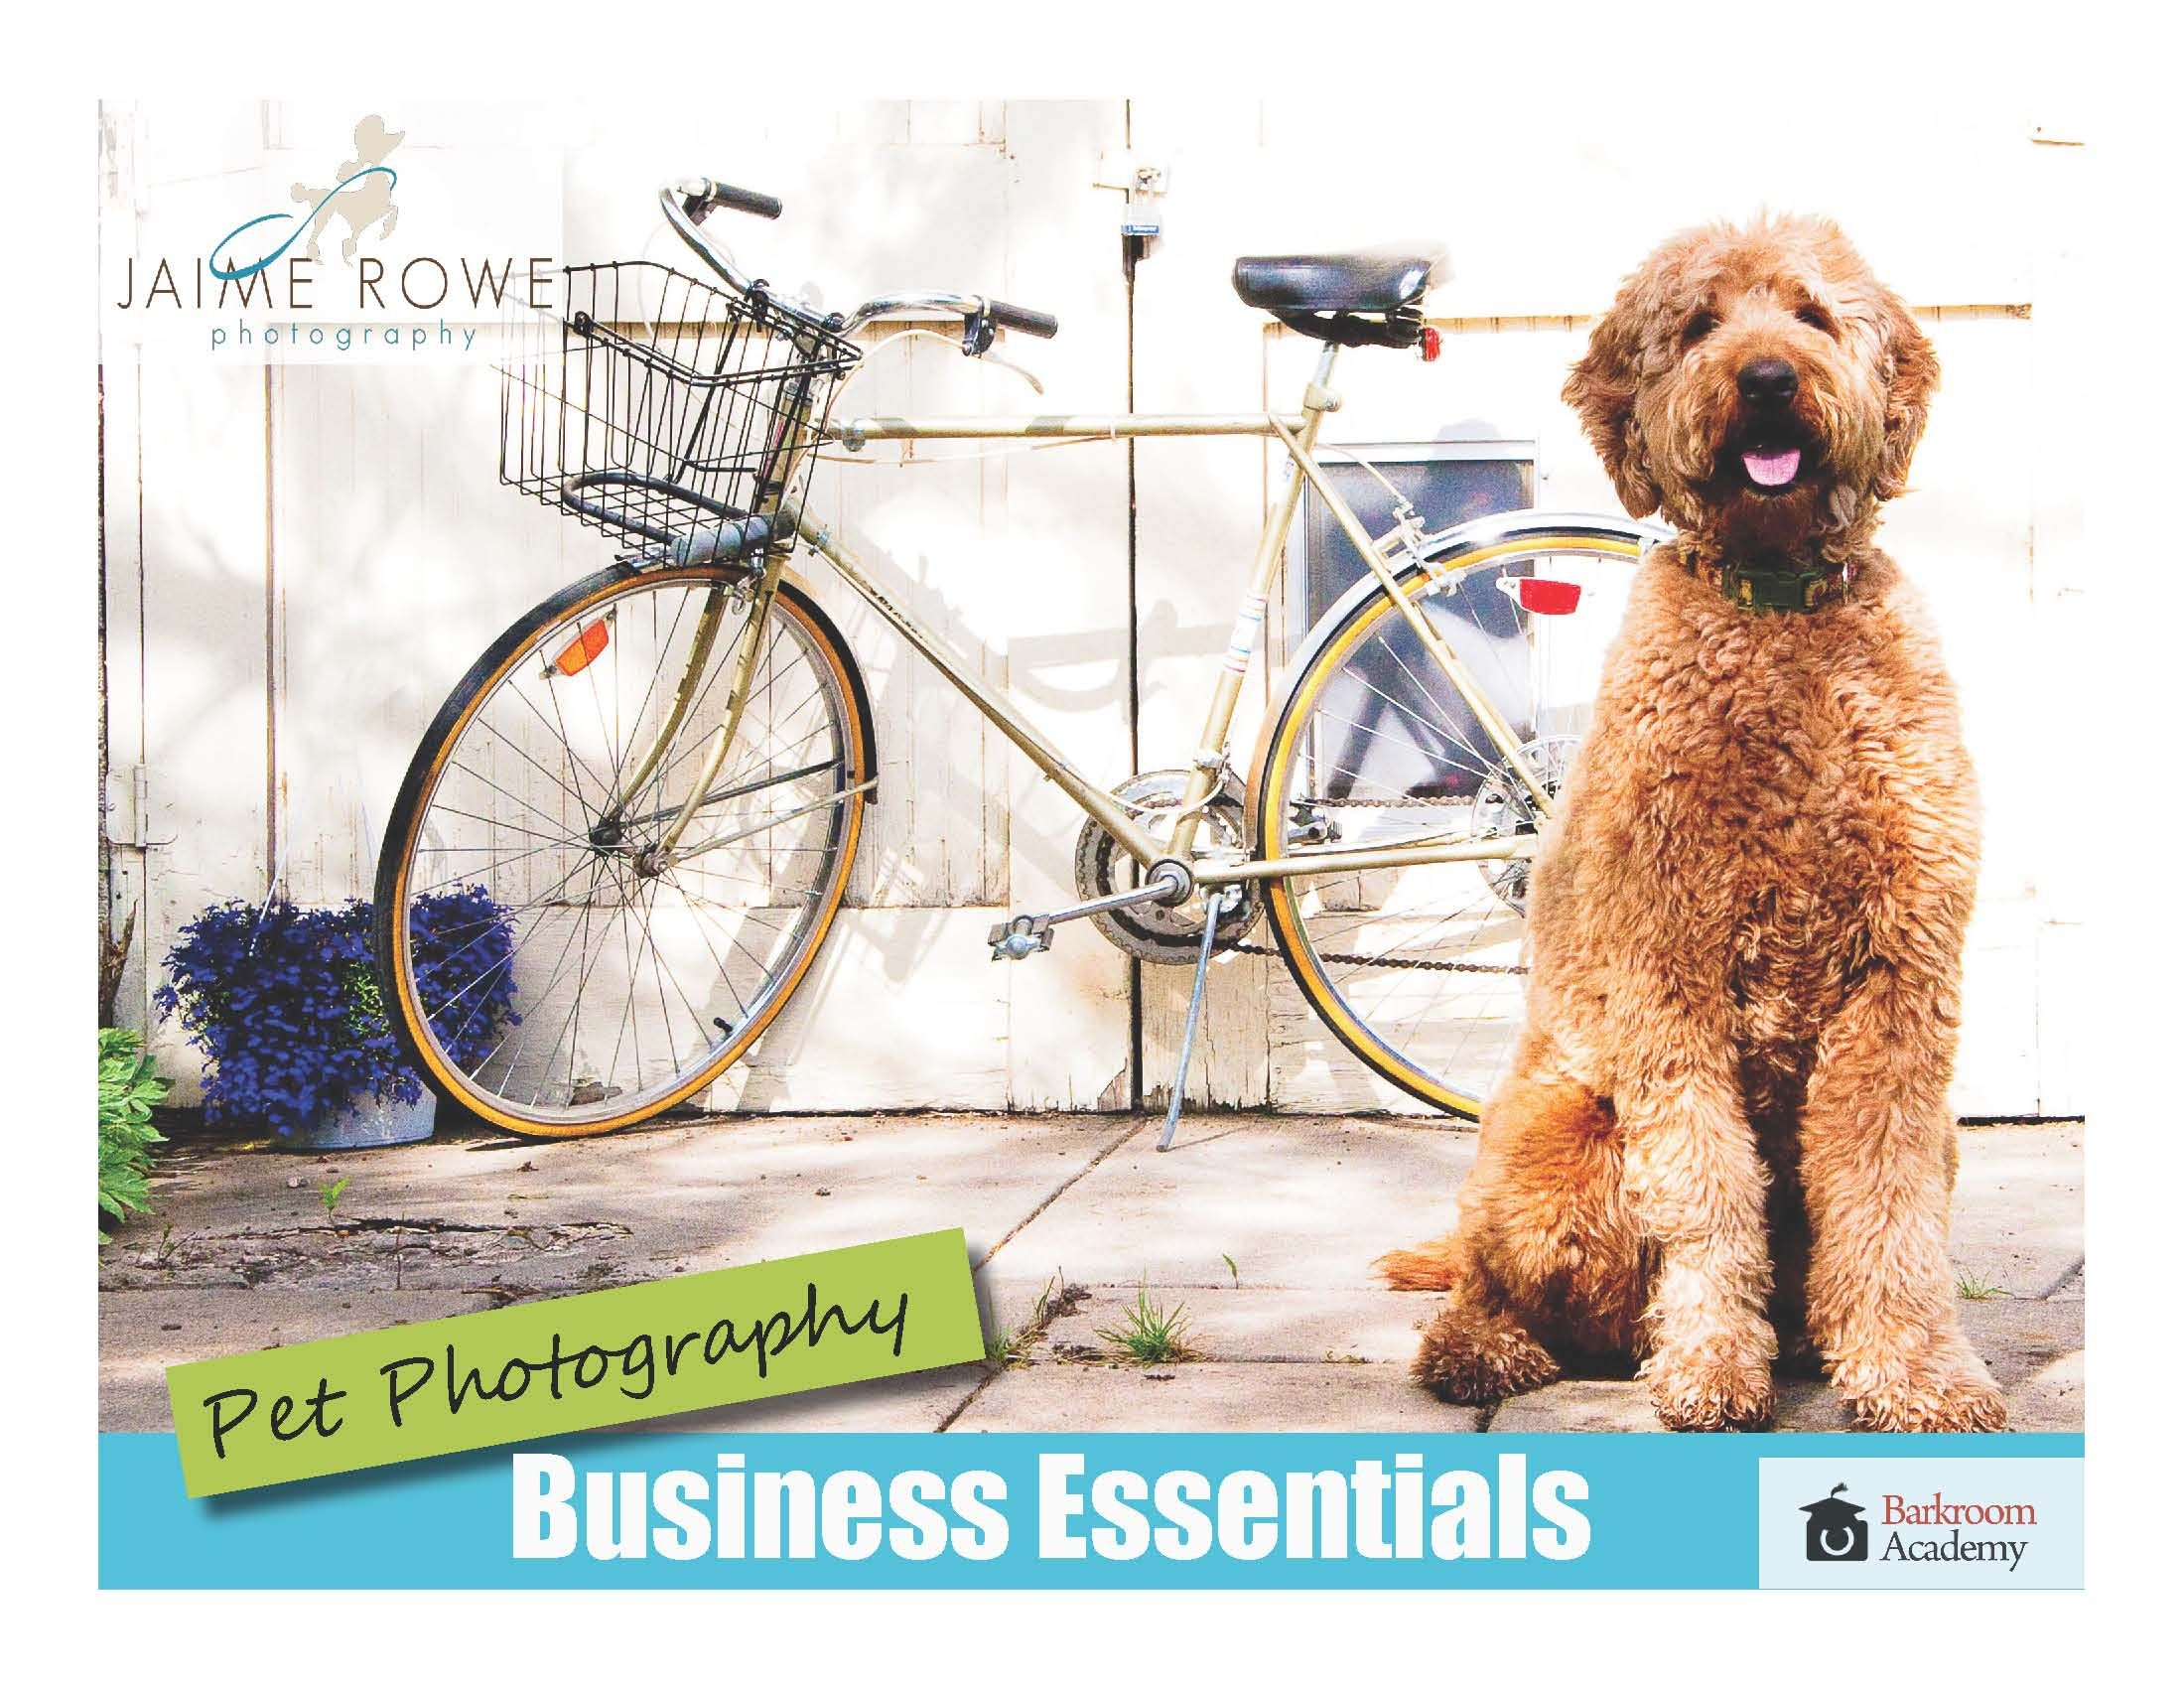 Pet Photography Business Essentials by Jaime Rowe!!!